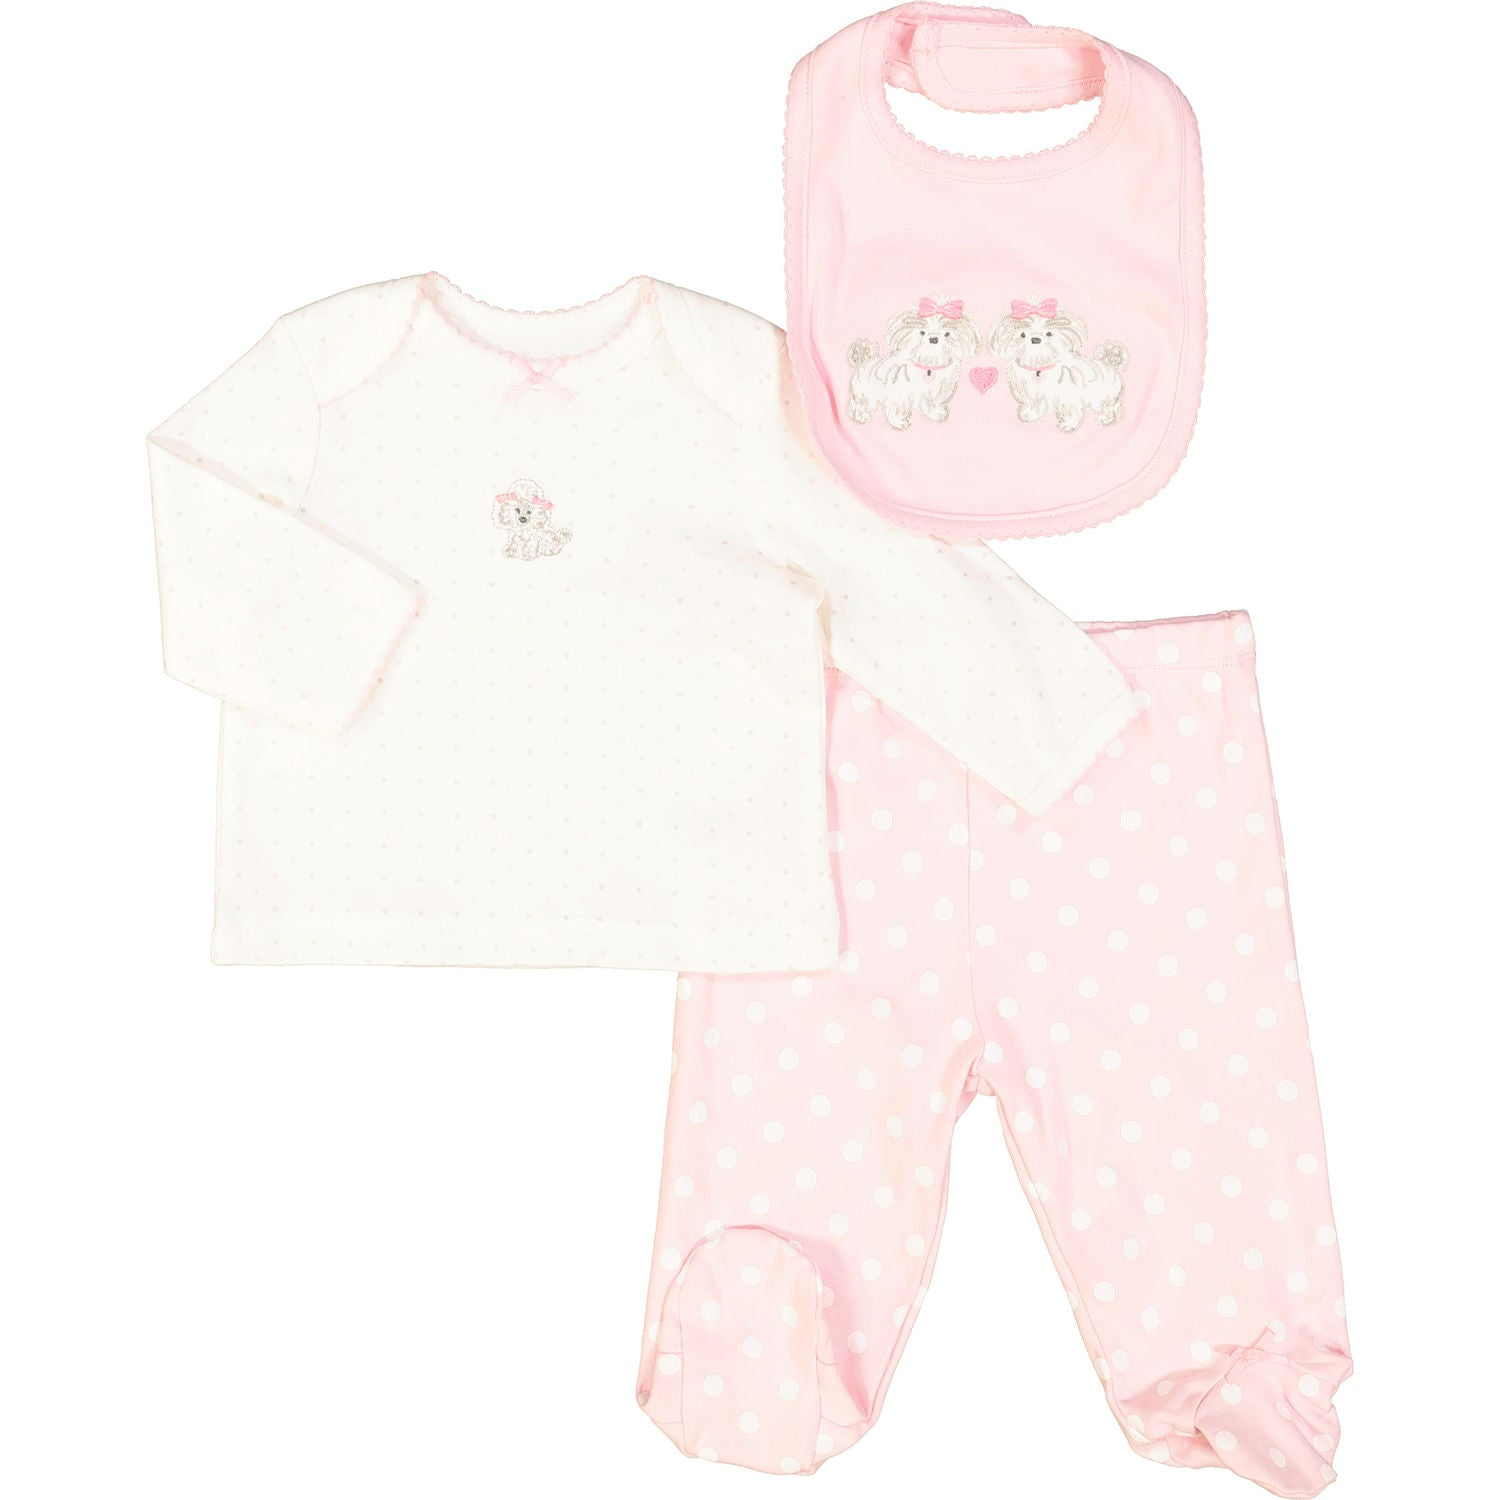 Roxy 3-Piece Cute Puppy Bib Set